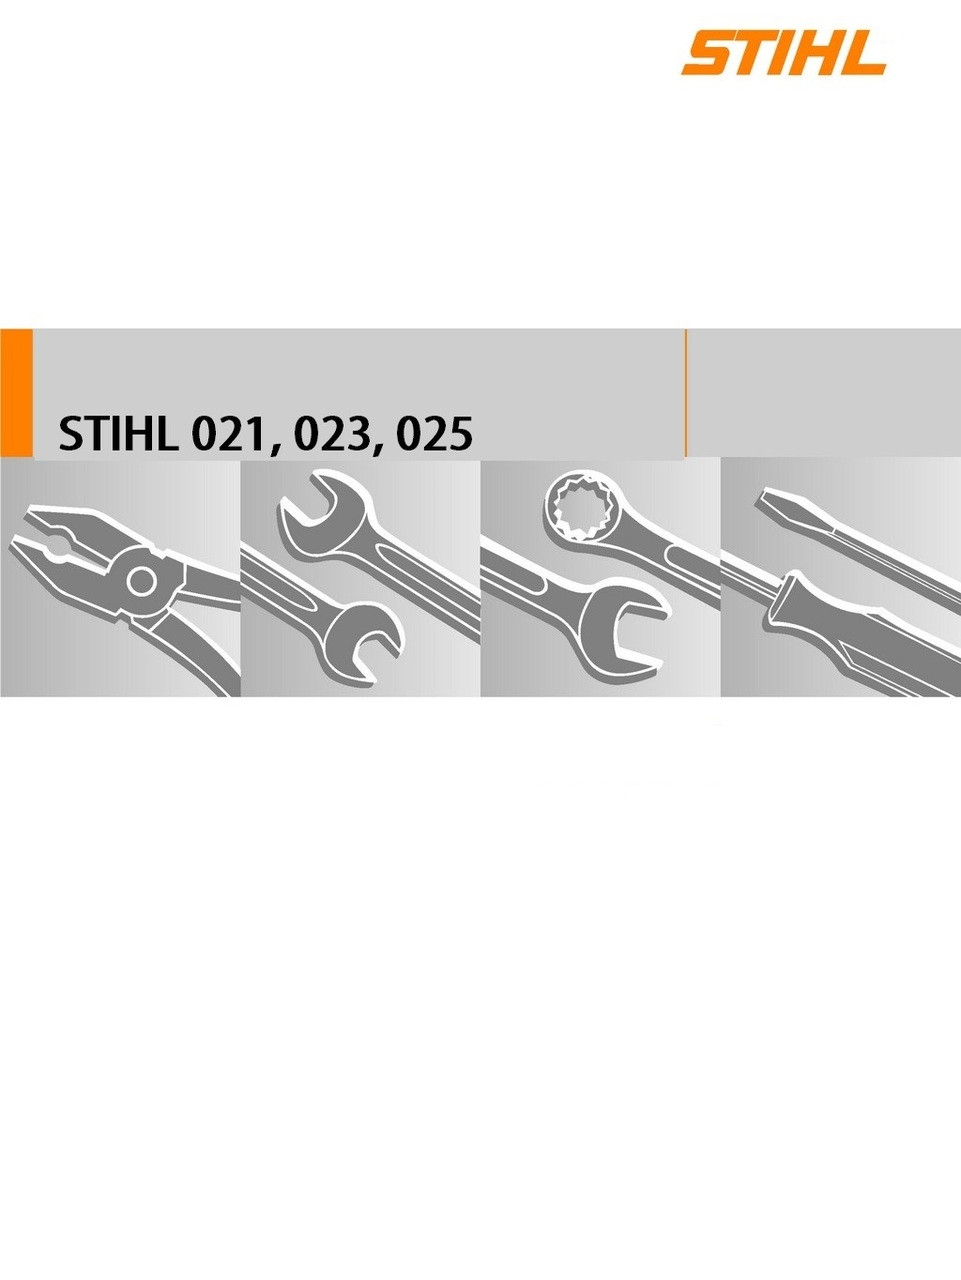 ... Chainsaw; Download Service Manual For Stihl 021, 023, 025. Image 1